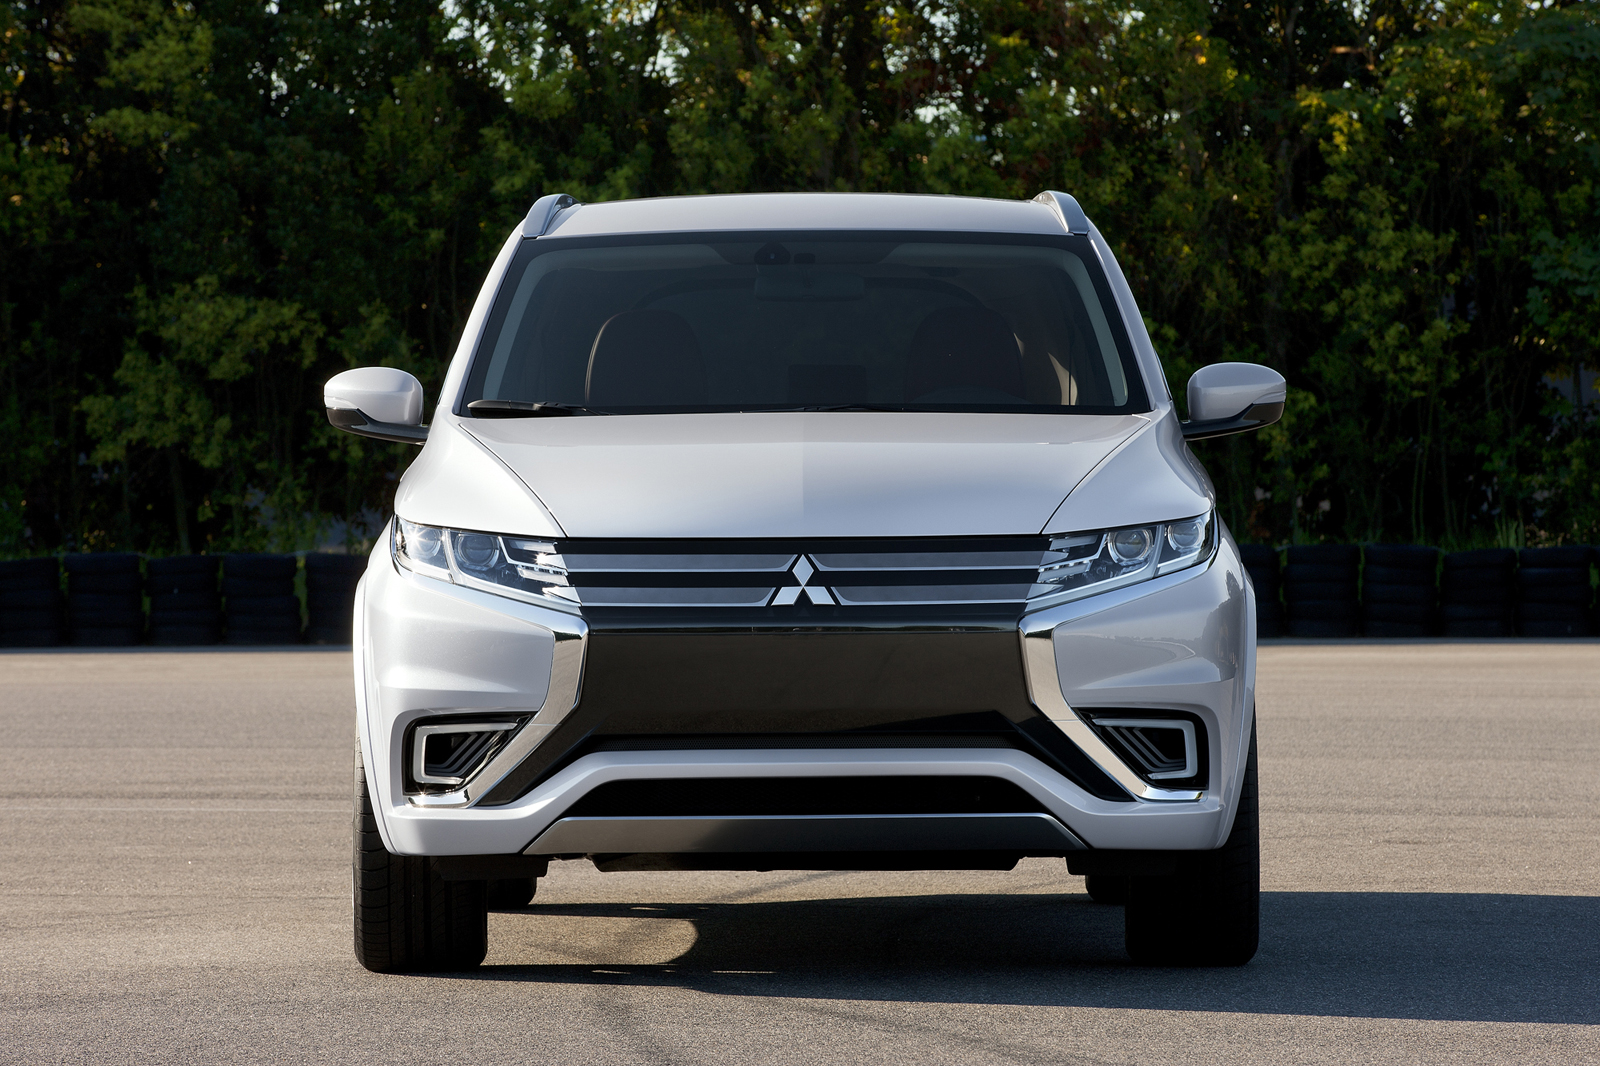 2019 Mitsubishi Outlander Gt Concept Car Photos Catalog 2018